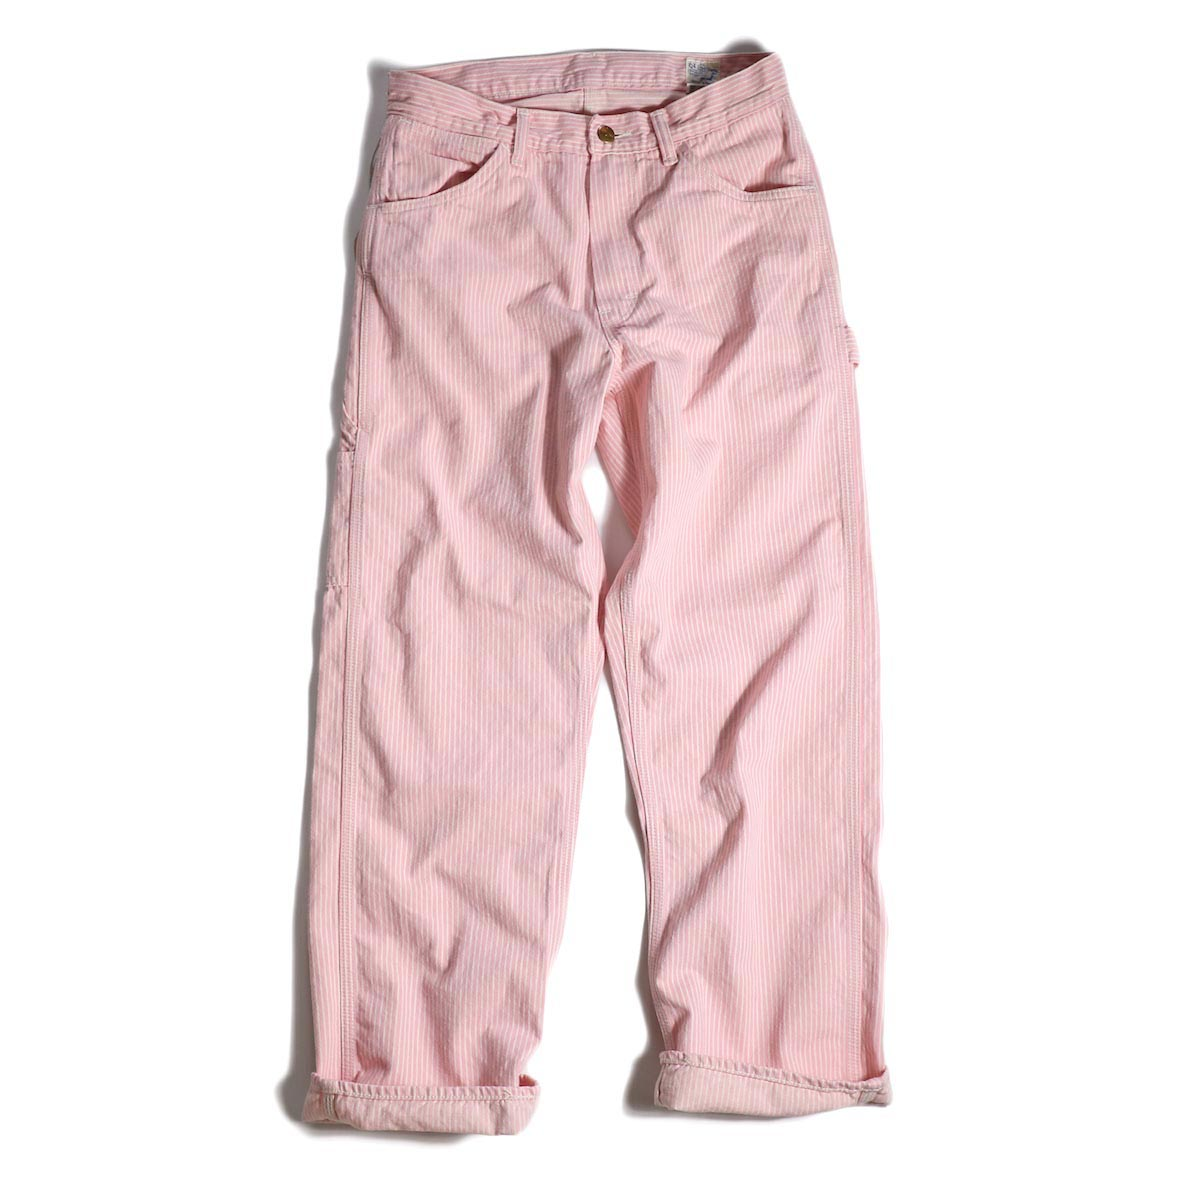 orSlow / PAINTER PANTS -Pink Hickory